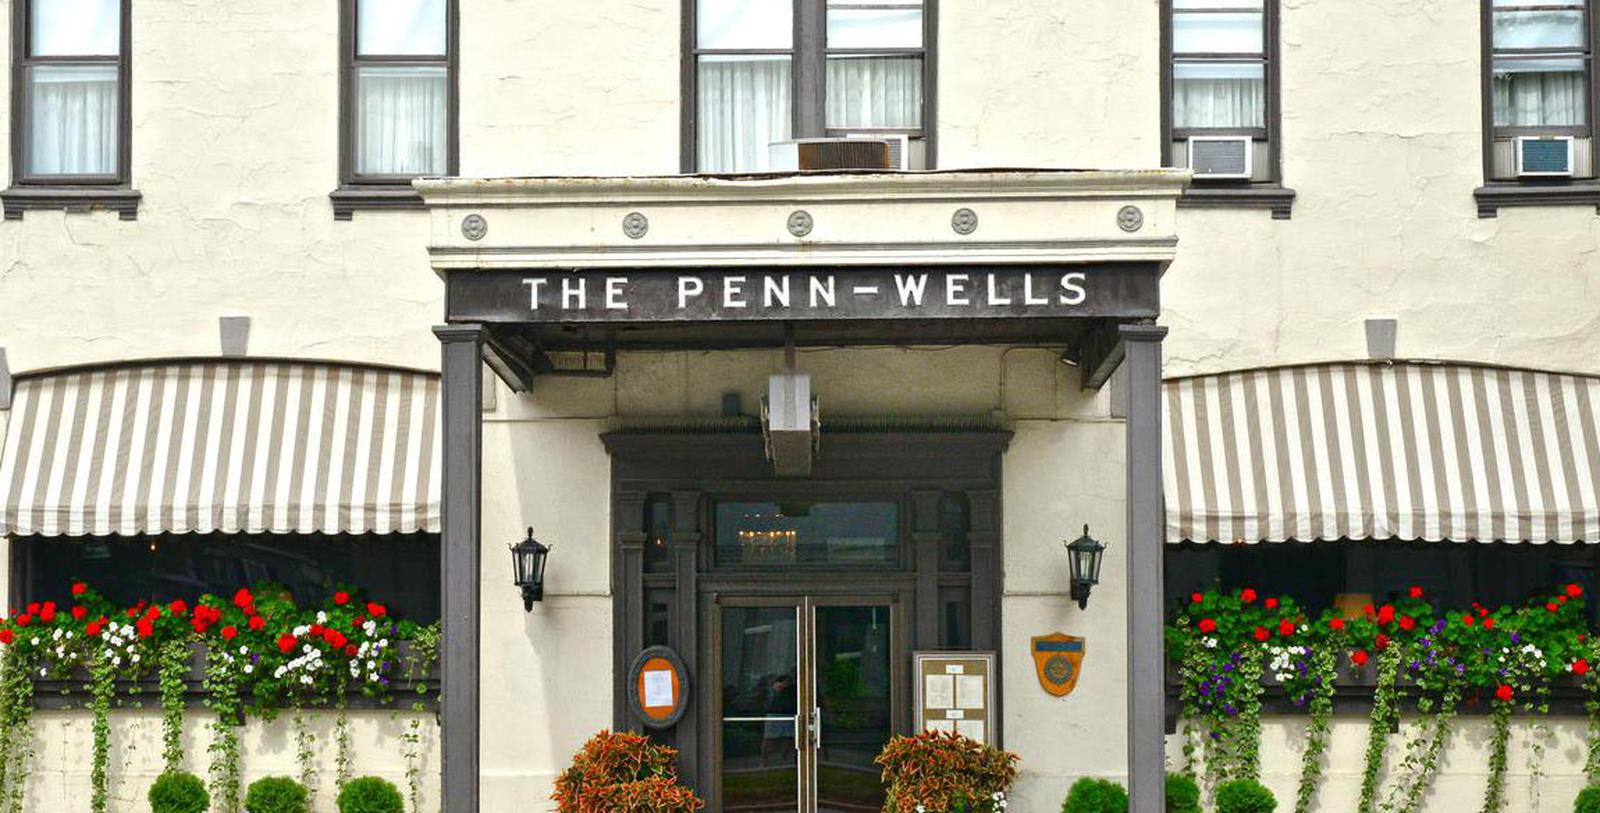 Image of Hotel Entrance at Penn Wells Hotel, 1869, Member of Historic Hotels of America, in Wellsboro, Pennsylvania, Discover